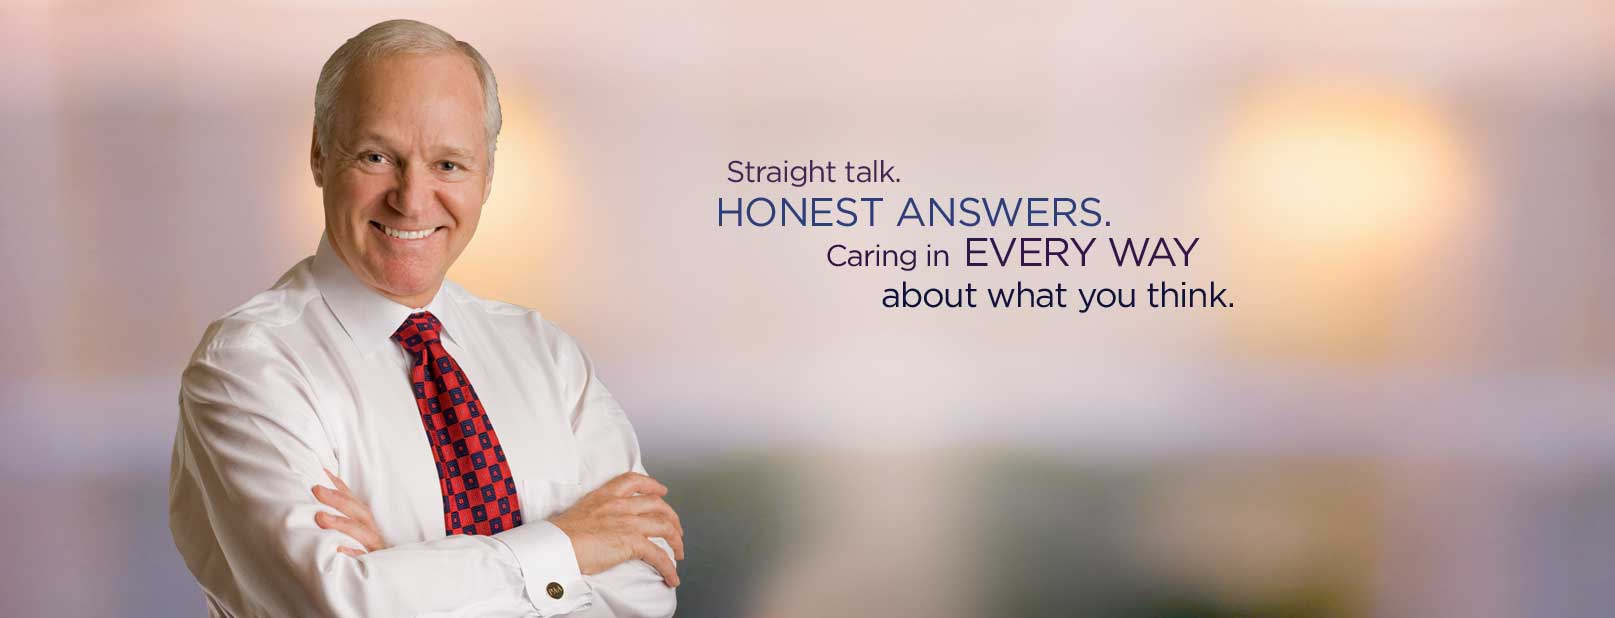 Honest Answers banner